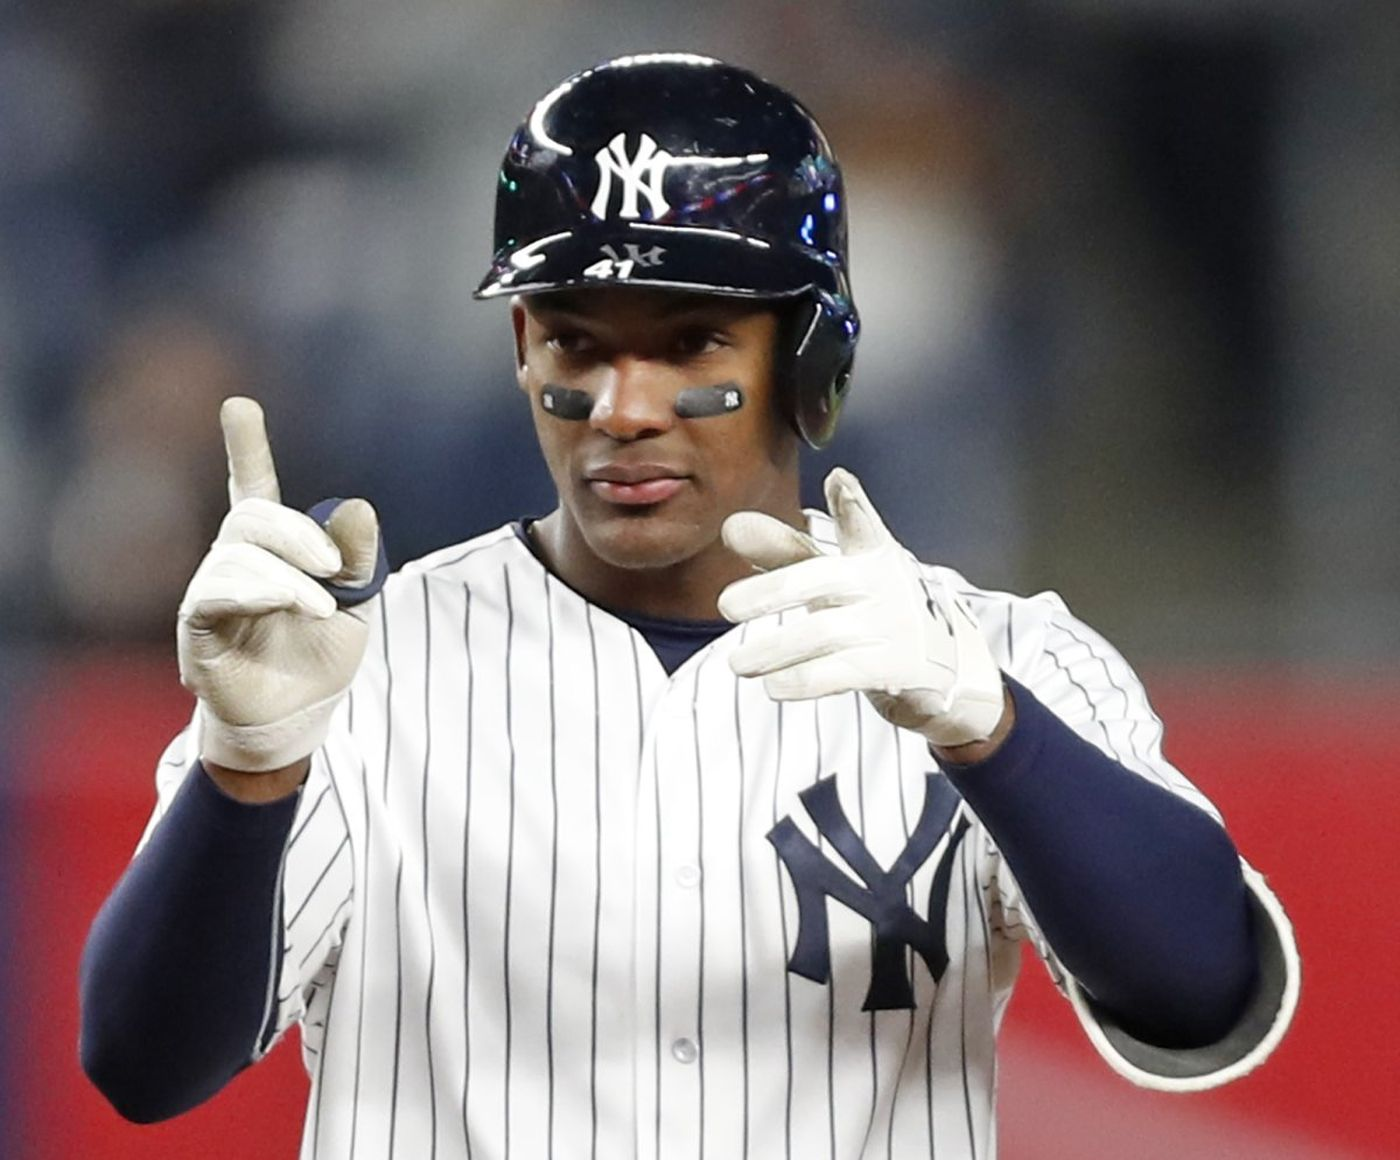 77f2fd13a41 Miguel Andujar may be the key to an offseason pitching upgrade